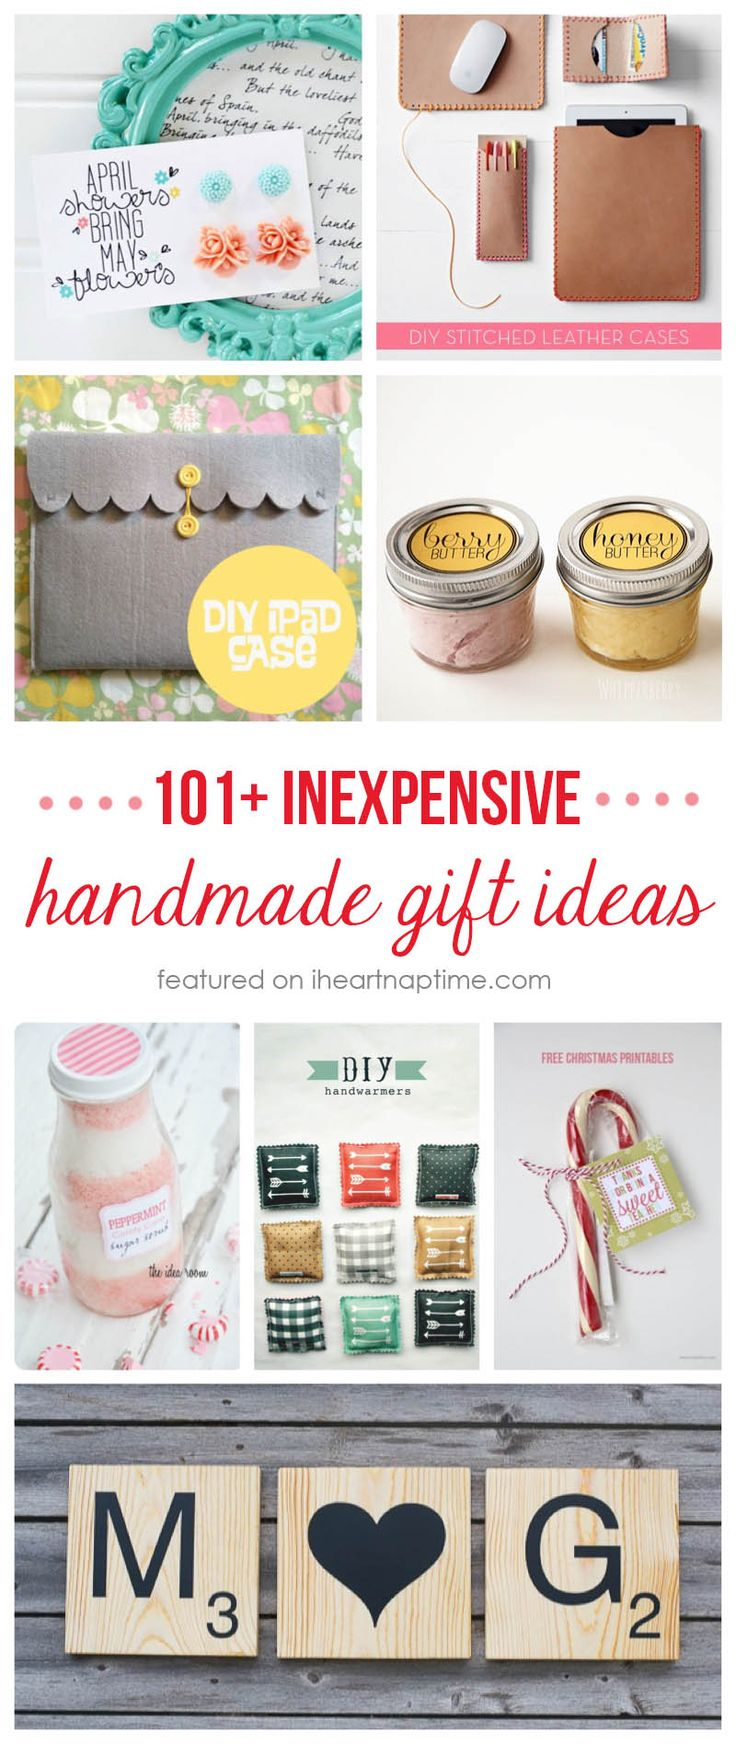 101+ inexpensive handmade Christmas gifts …so many great ideas that would be easy to make!